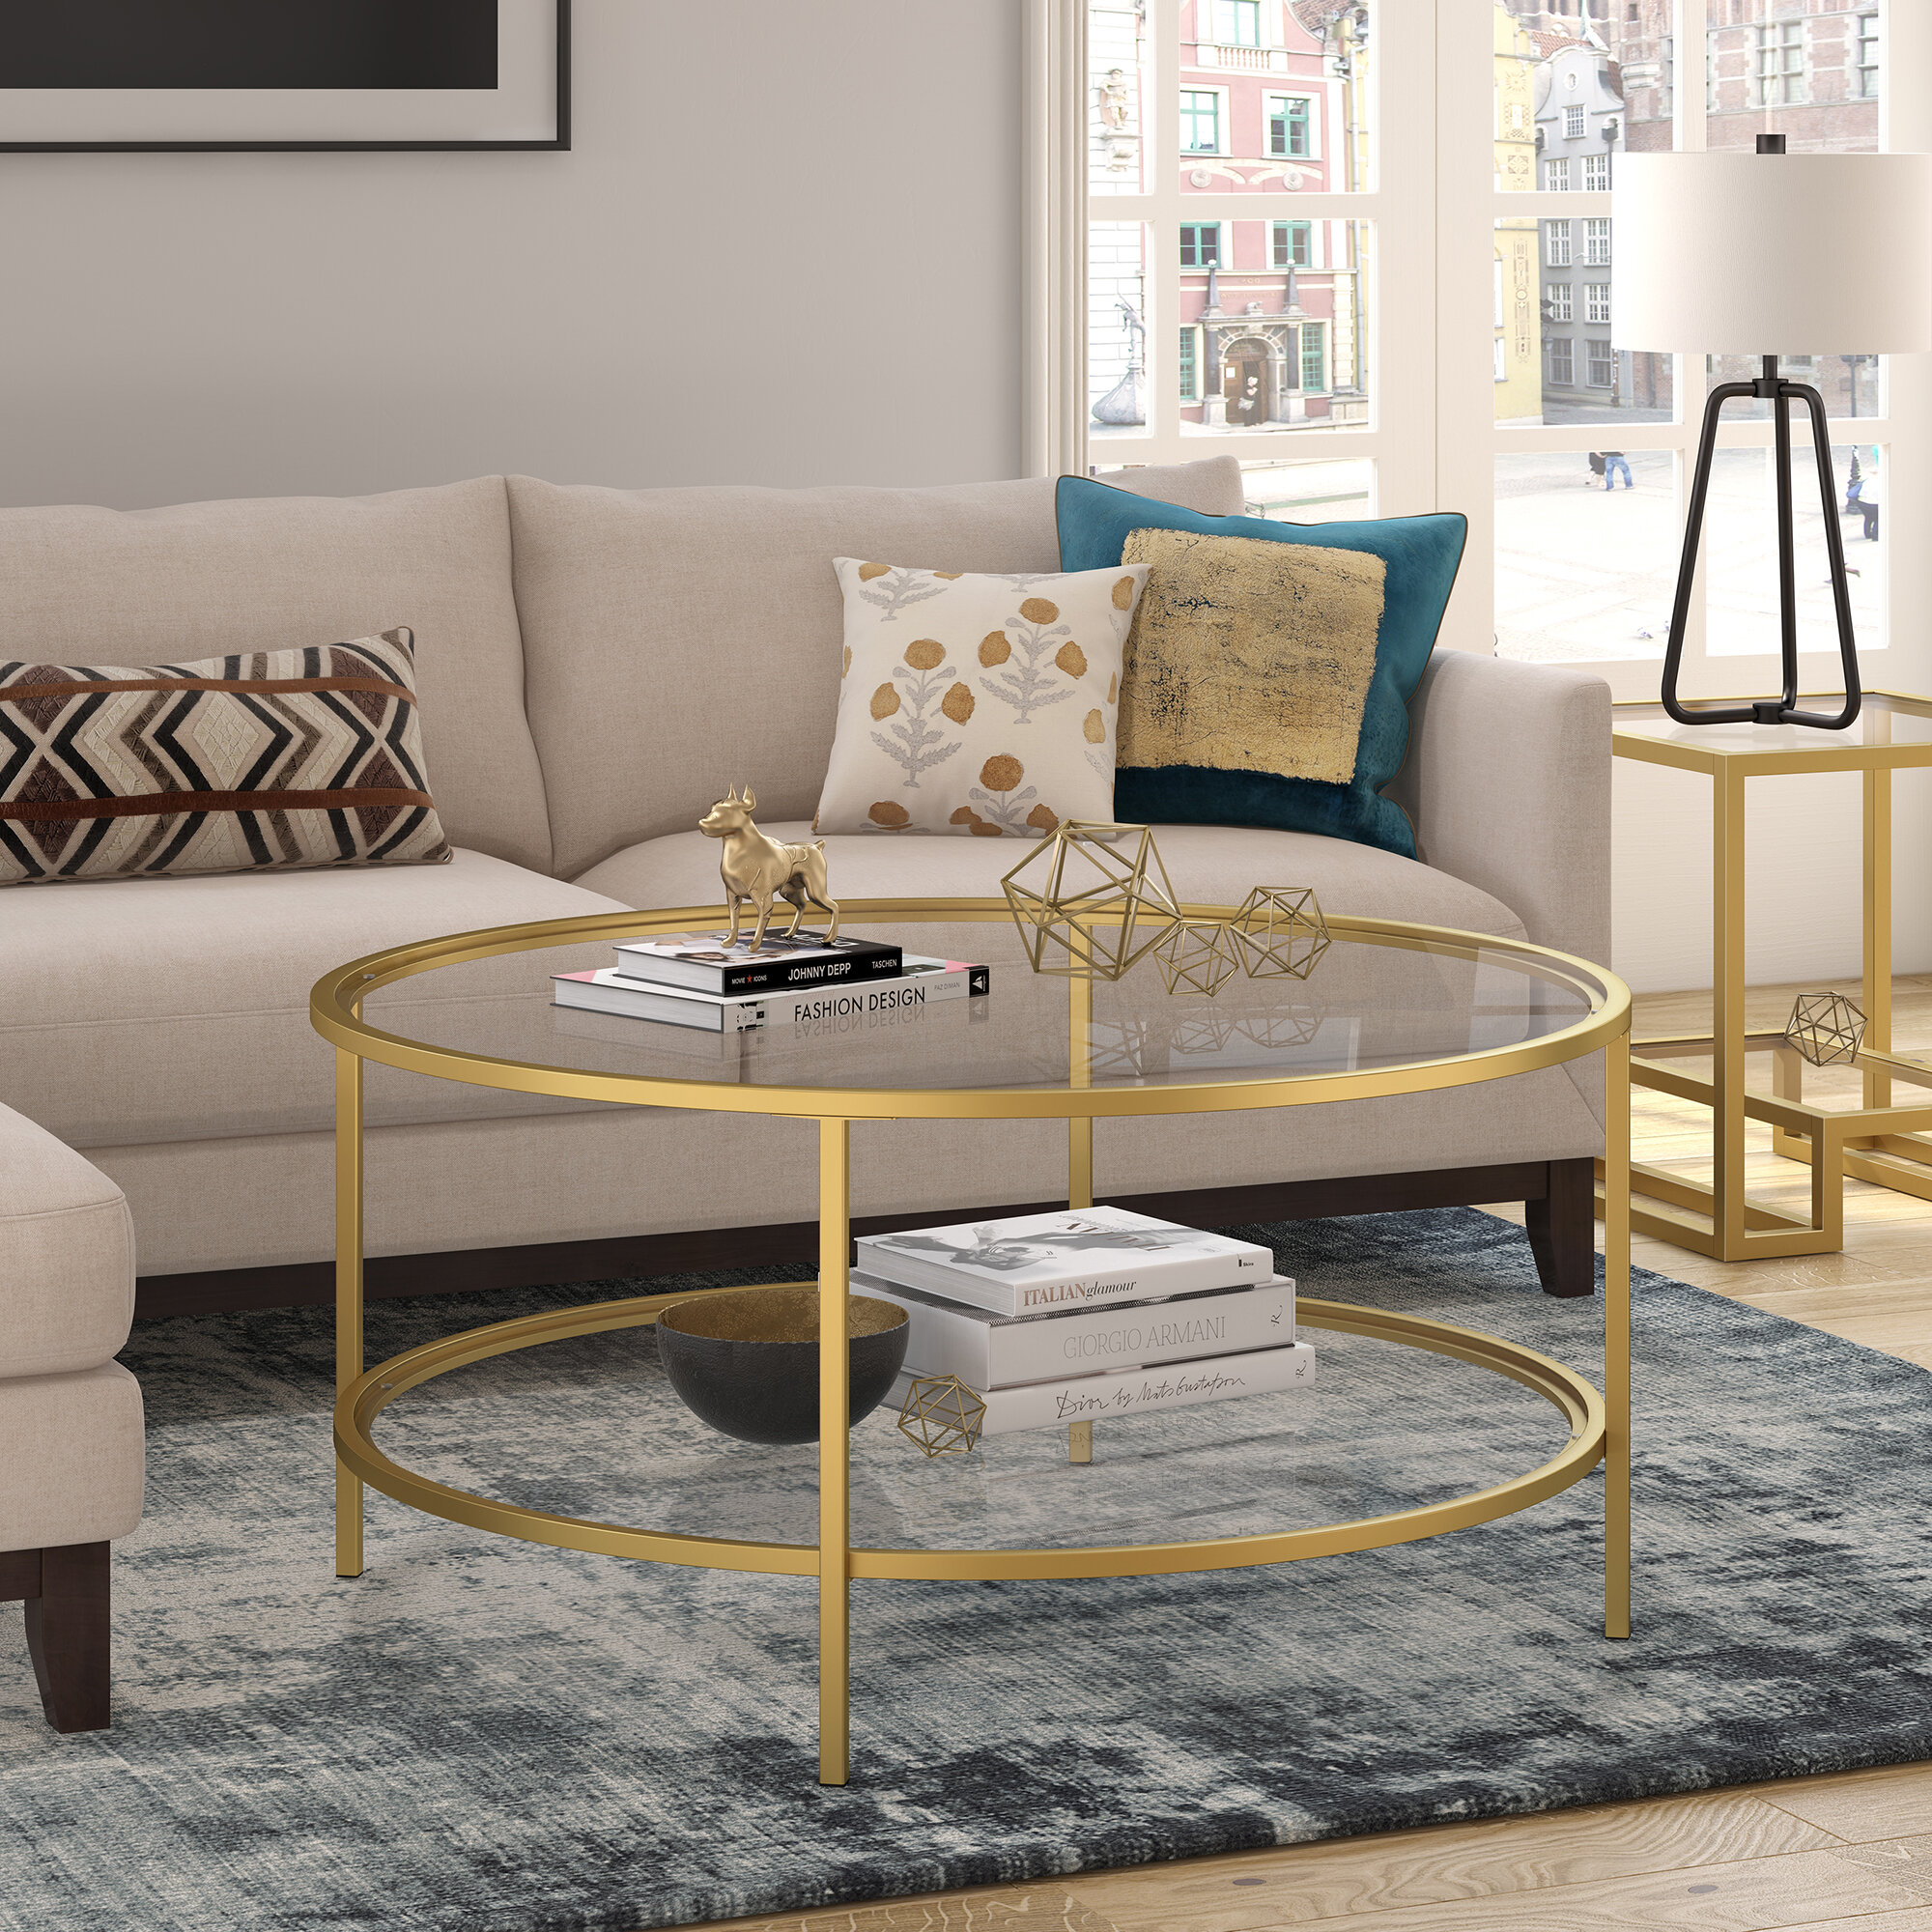 Gold Round Coffee Tables Free Shipping Over 35 Wayfair